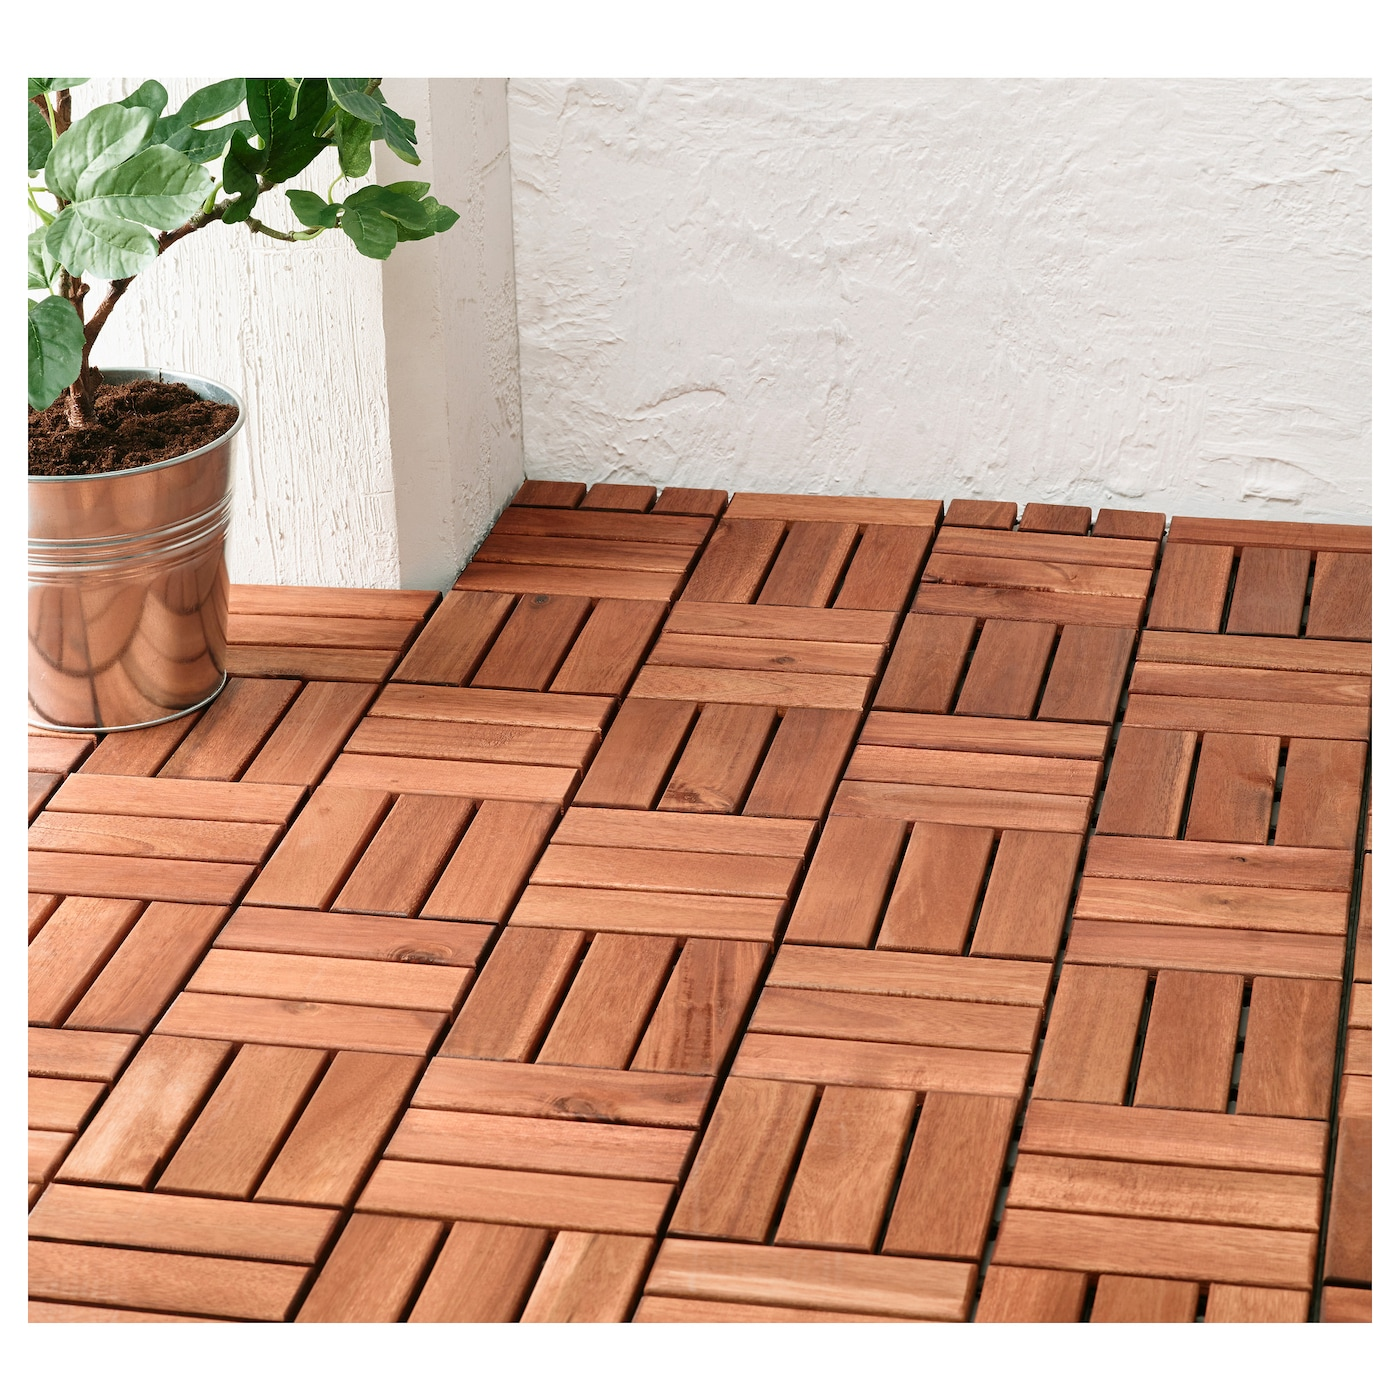 Runnen floor decking outdoor brown stained m ikea for Pavimento adesivo ikea